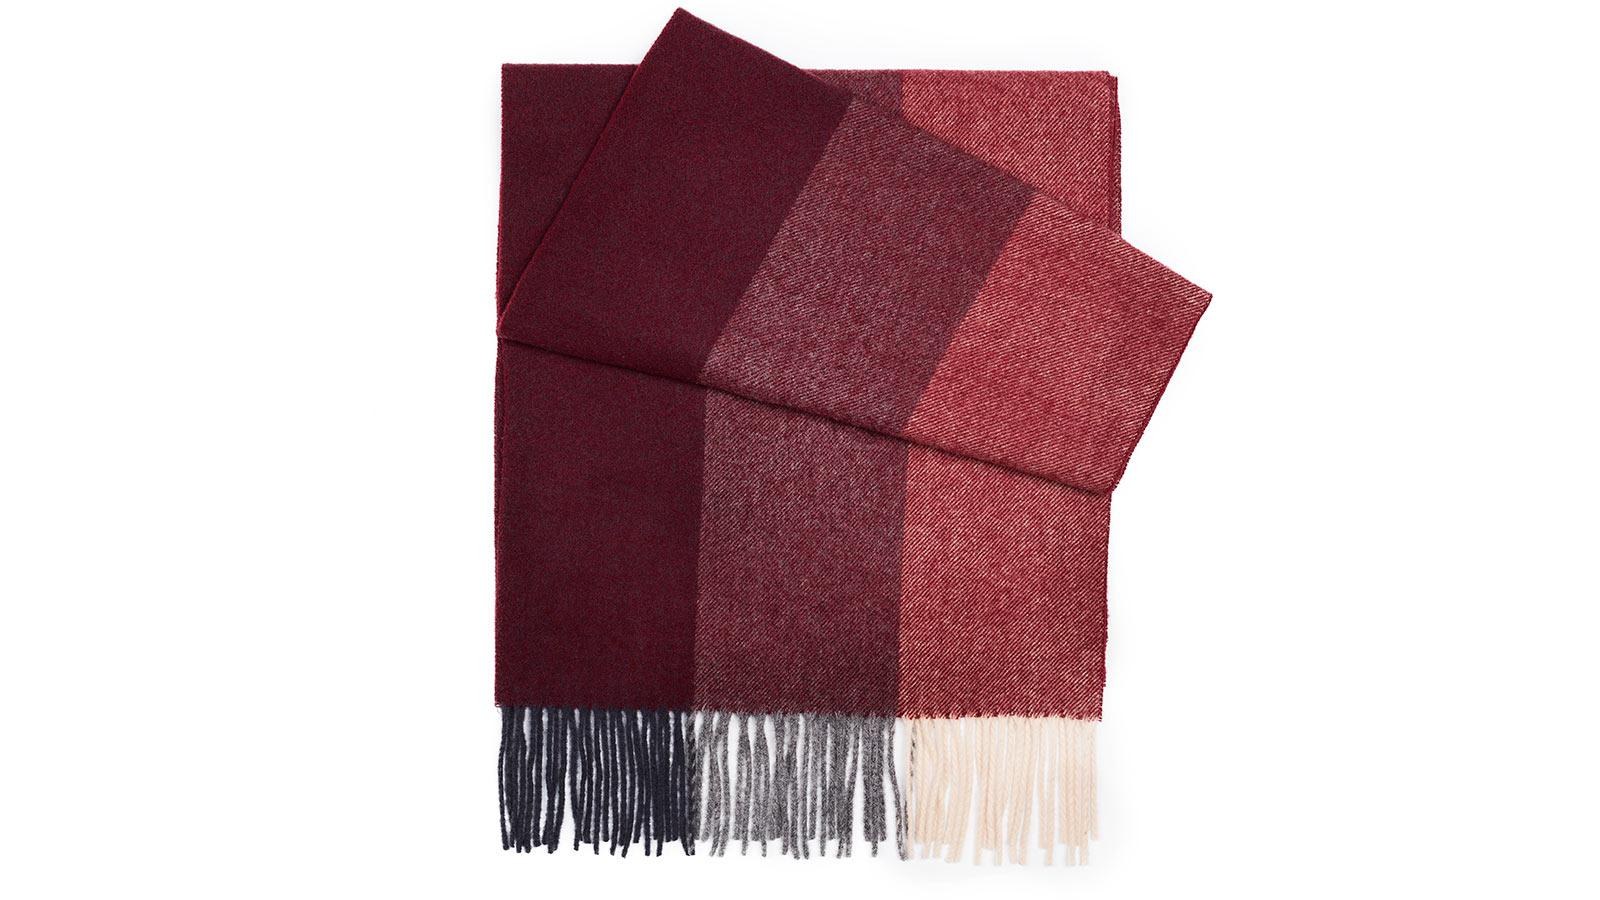 Red & Burgundy Striped Wool Scarf - slider image 1